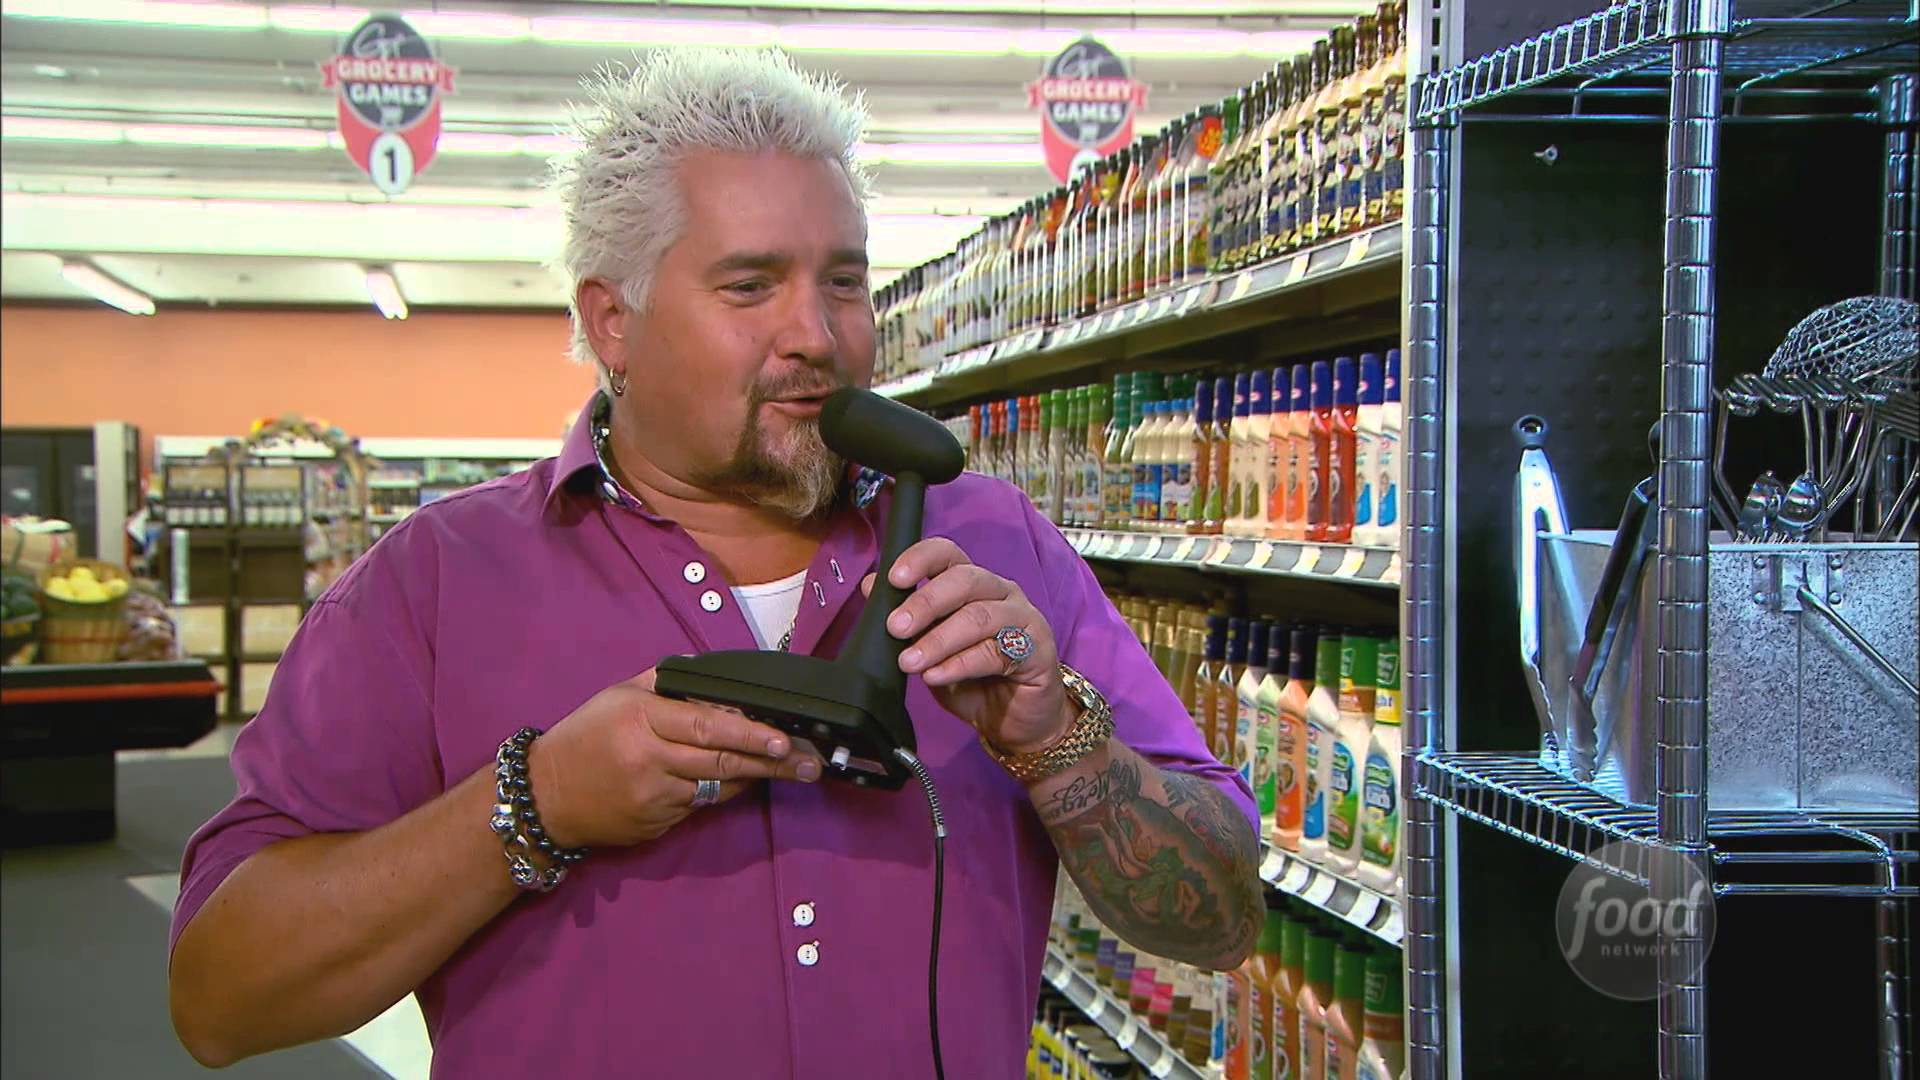 Guy's Grocery Games TV Show - Season 20 ... - Next Episode